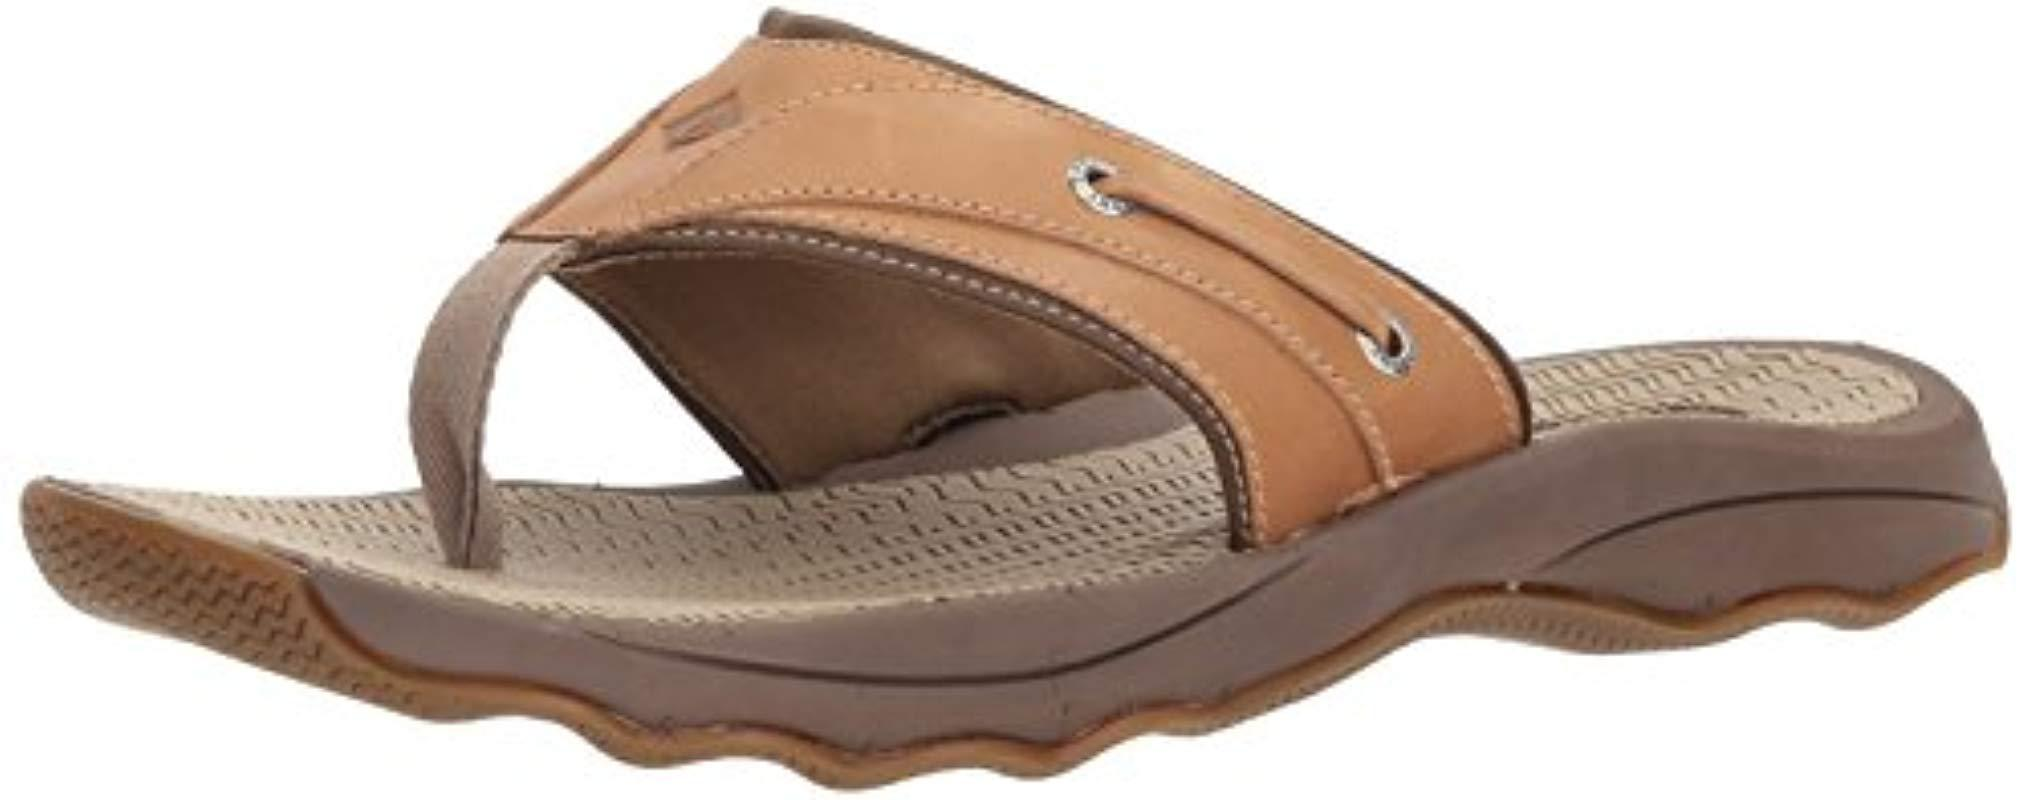 35a1fedc0d8 Lyst - Sperry Top-Sider Top-sider Outer Banks Thong Sandal in Brown ...